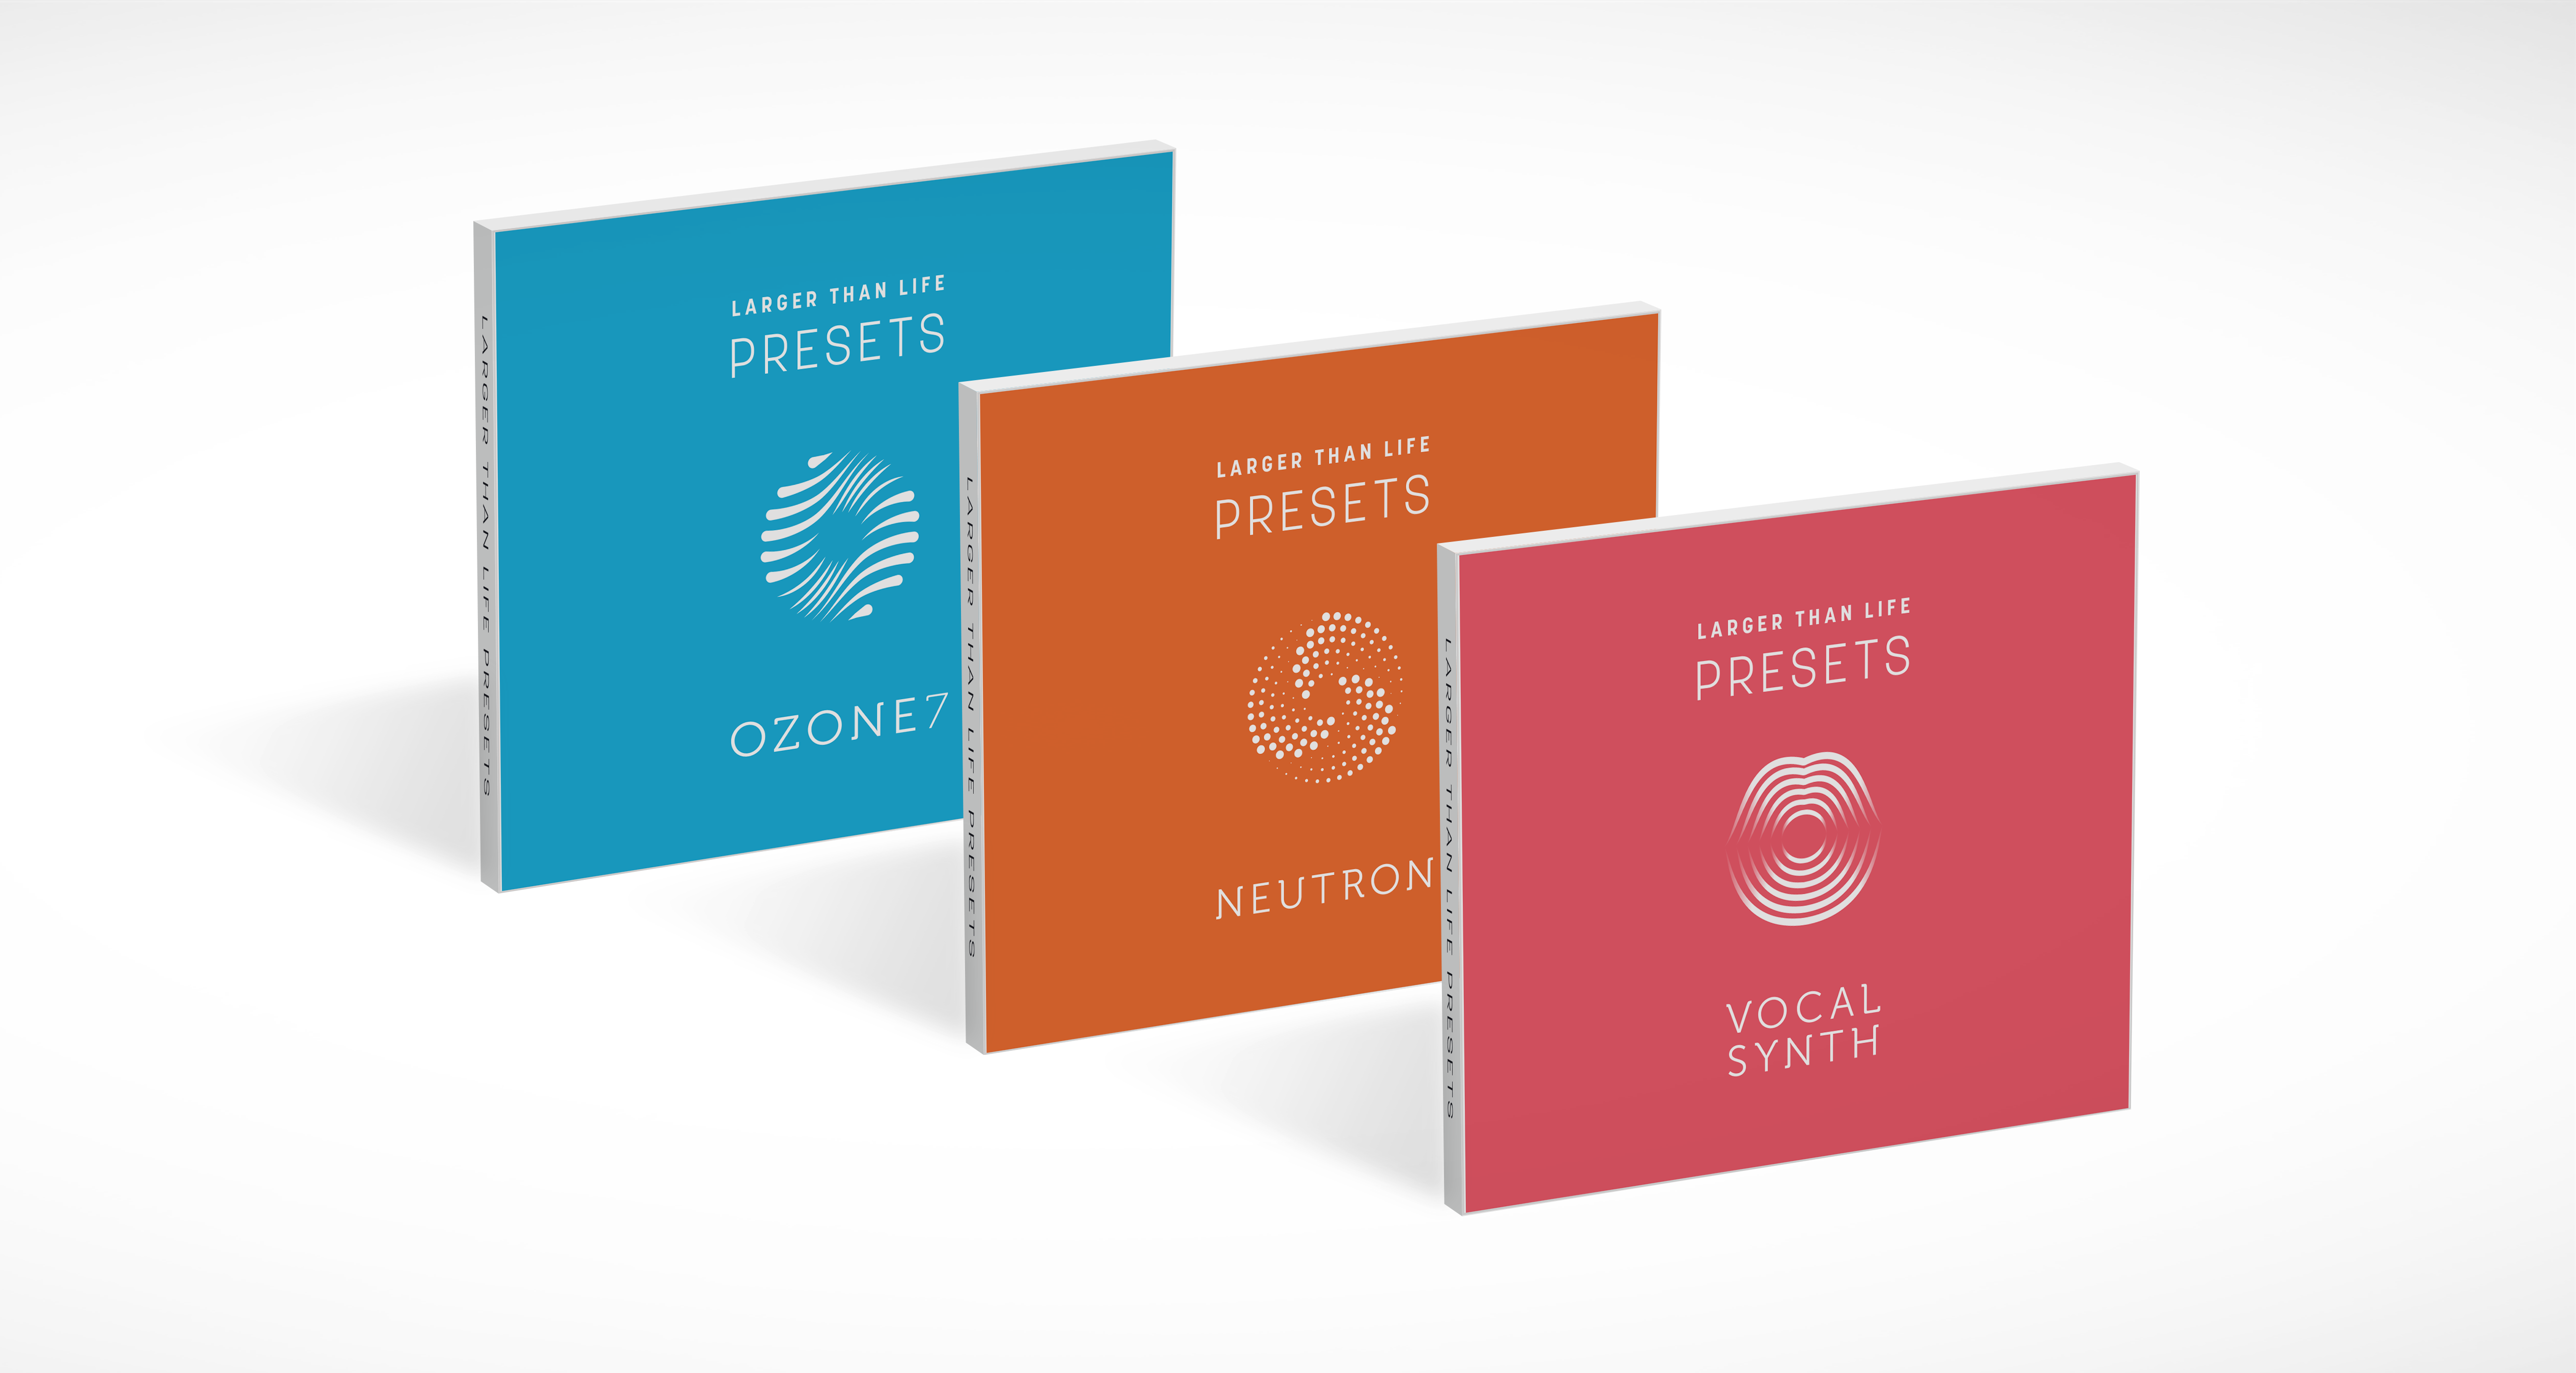 3 Free Preset Packs: VocalSynth, Neutron, and Ozone 7